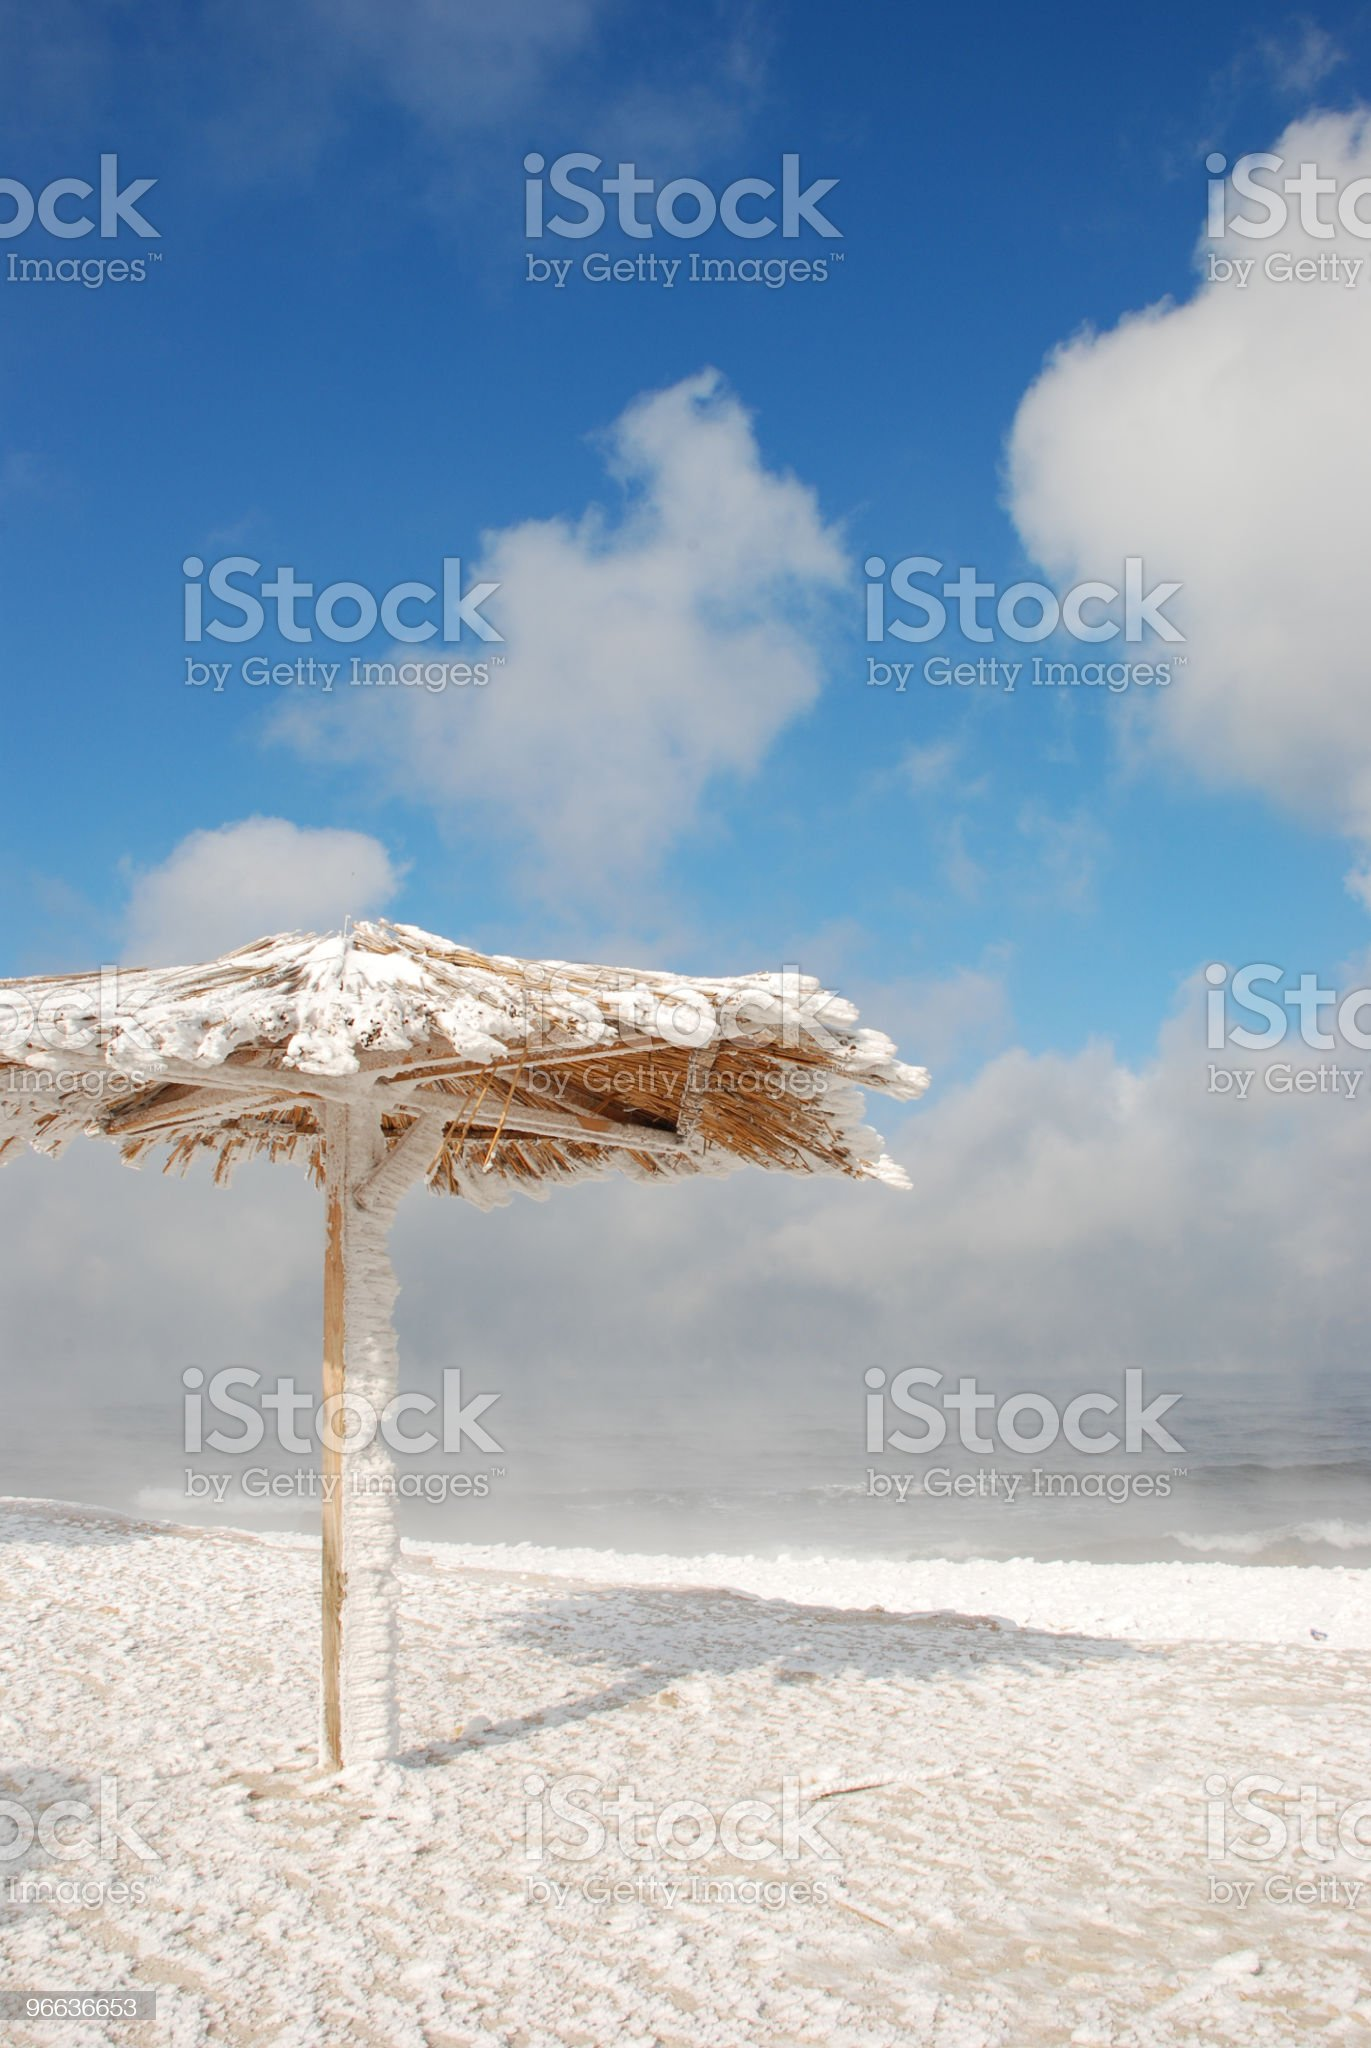 beautiful beach in the winter snow royalty-free stock photo